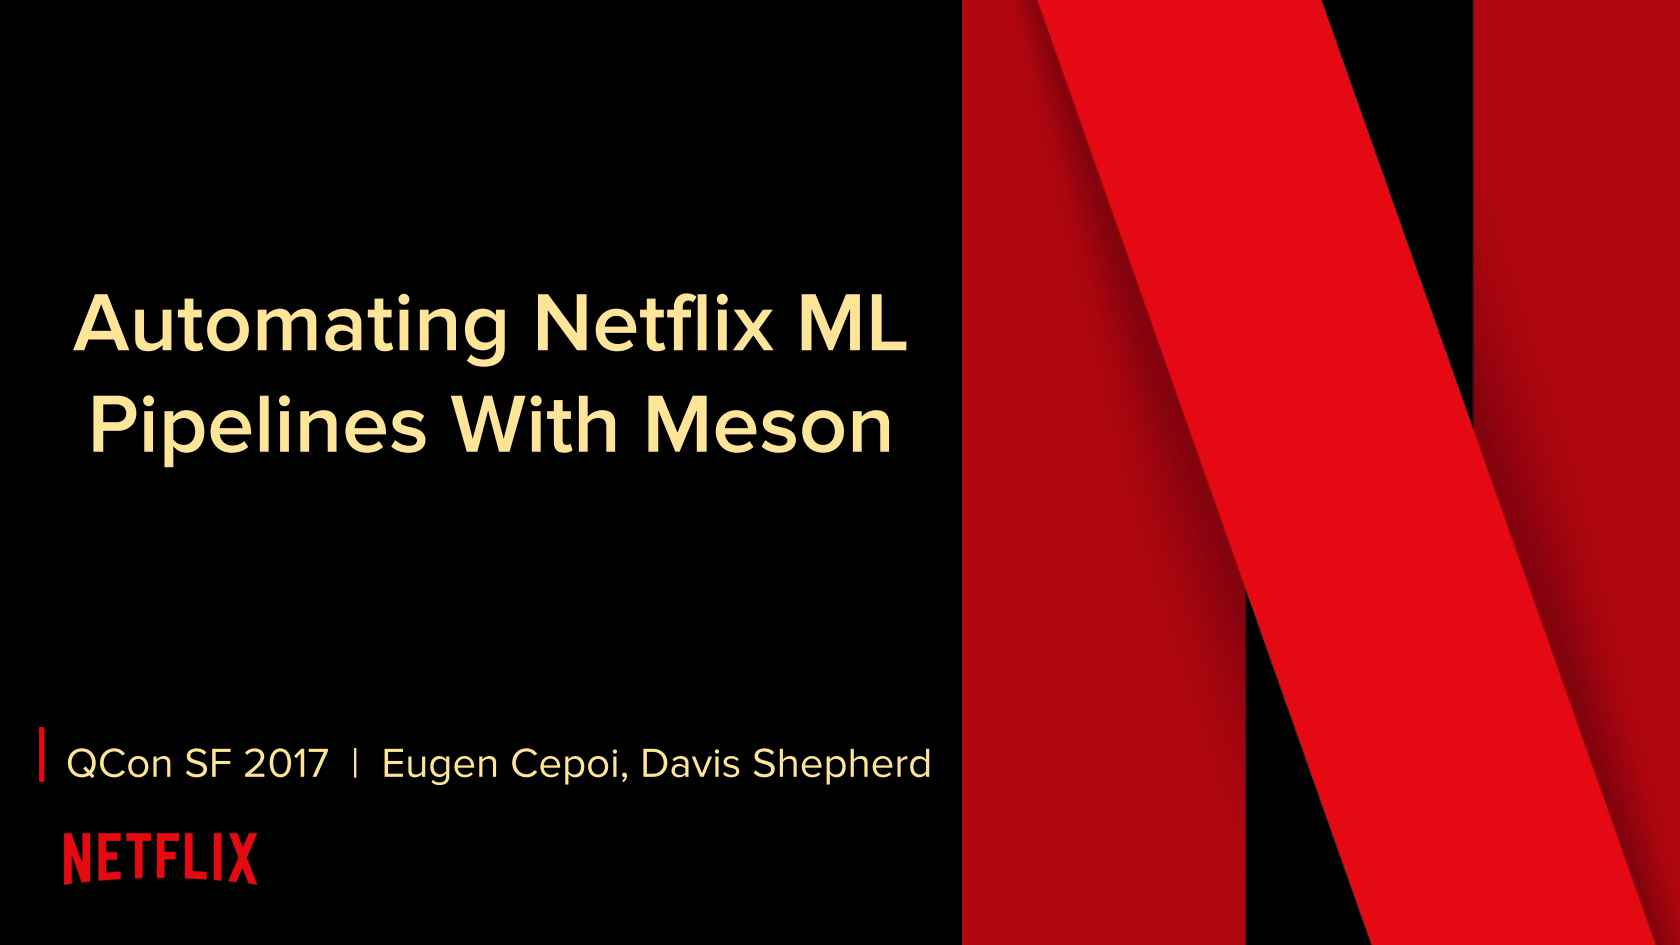 Automating Netflix ML Pipelines with Meson